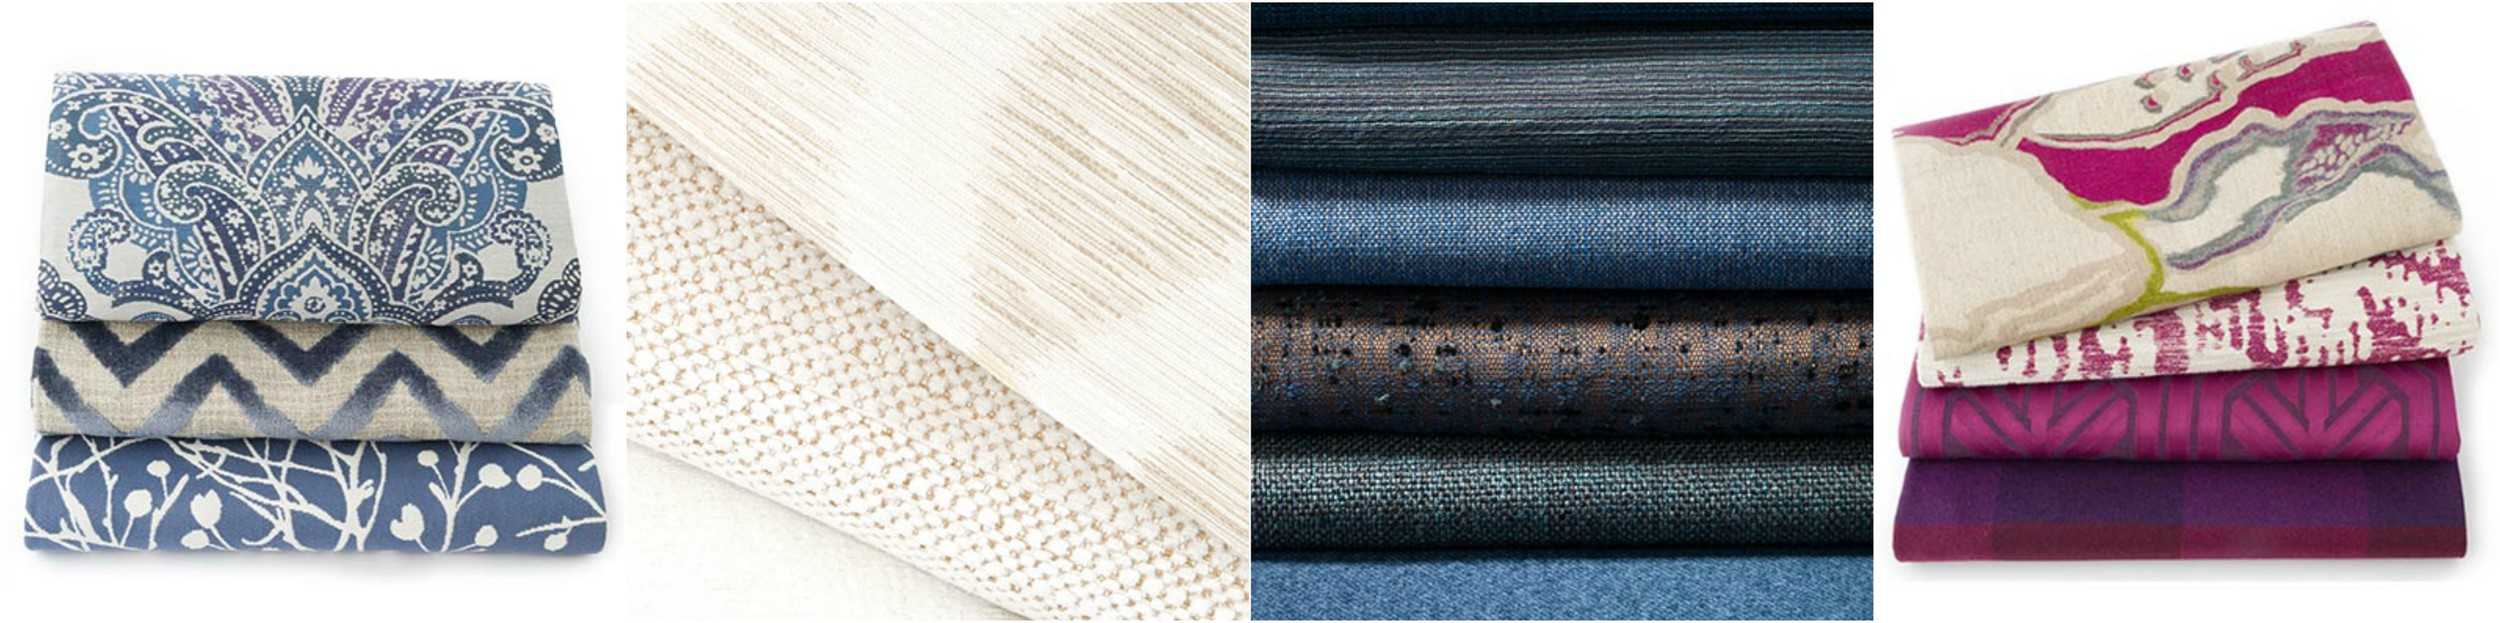 The Denicola's fabric showroom has hundreds of thousand of fabrics in stock and ready to browse.